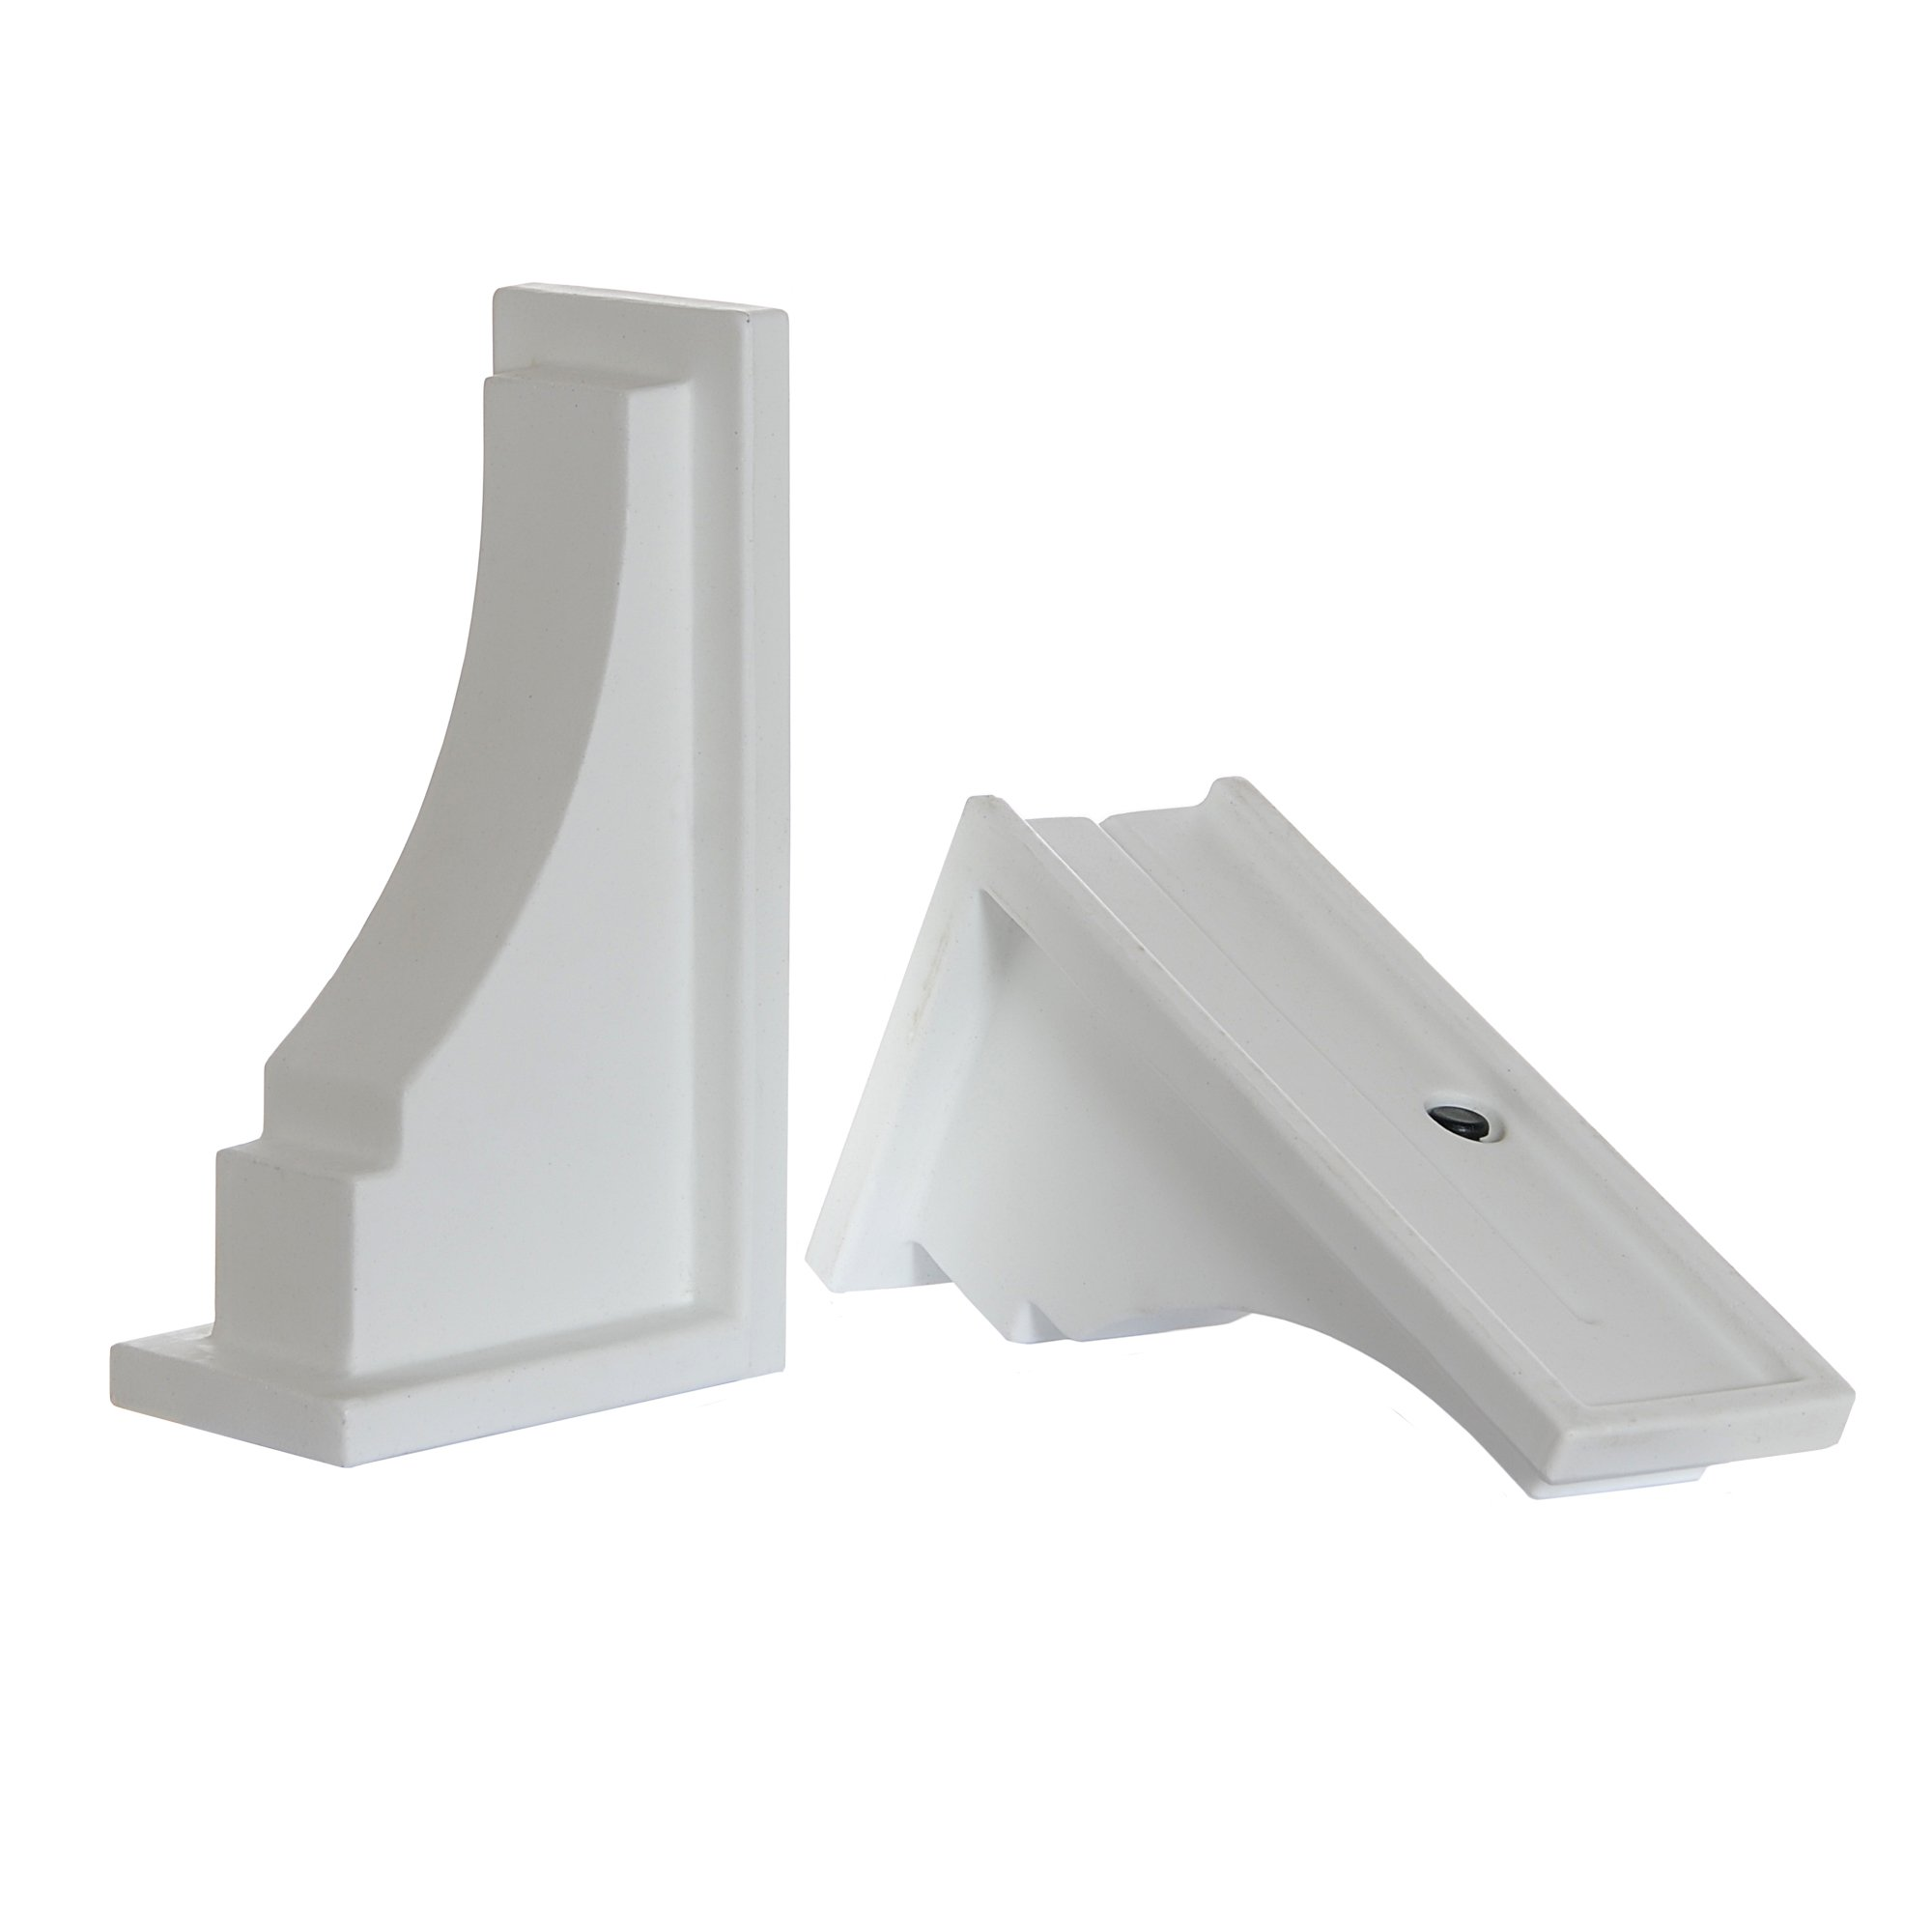 Mayne Inc Fairfield Decorative Brackets, 2-pack, White